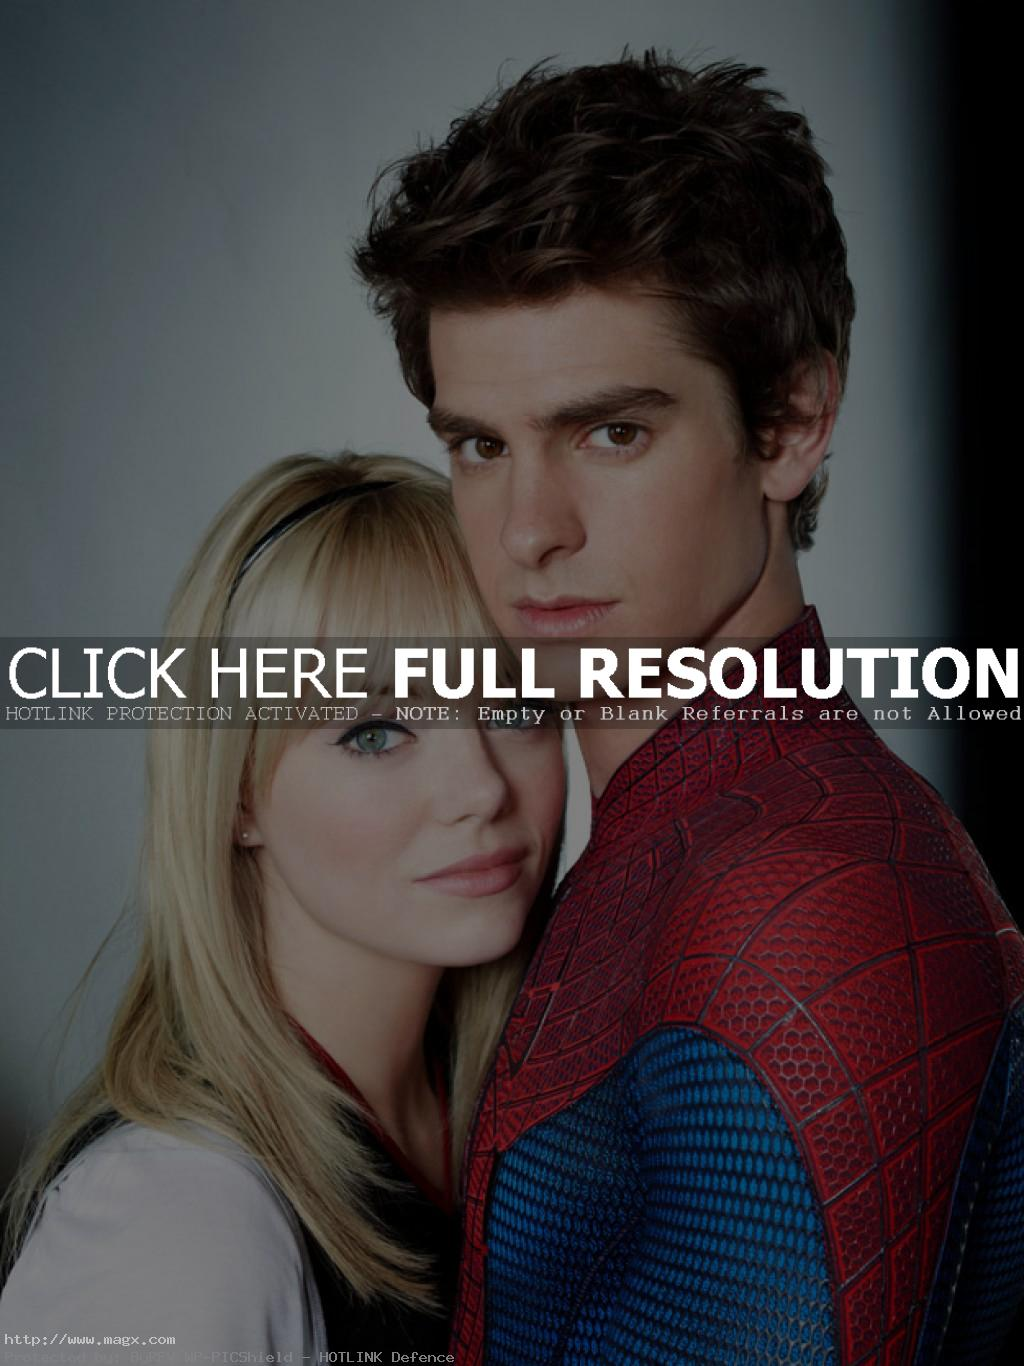 amazing spider man10 The Amazing Spiderman is Back in 3D